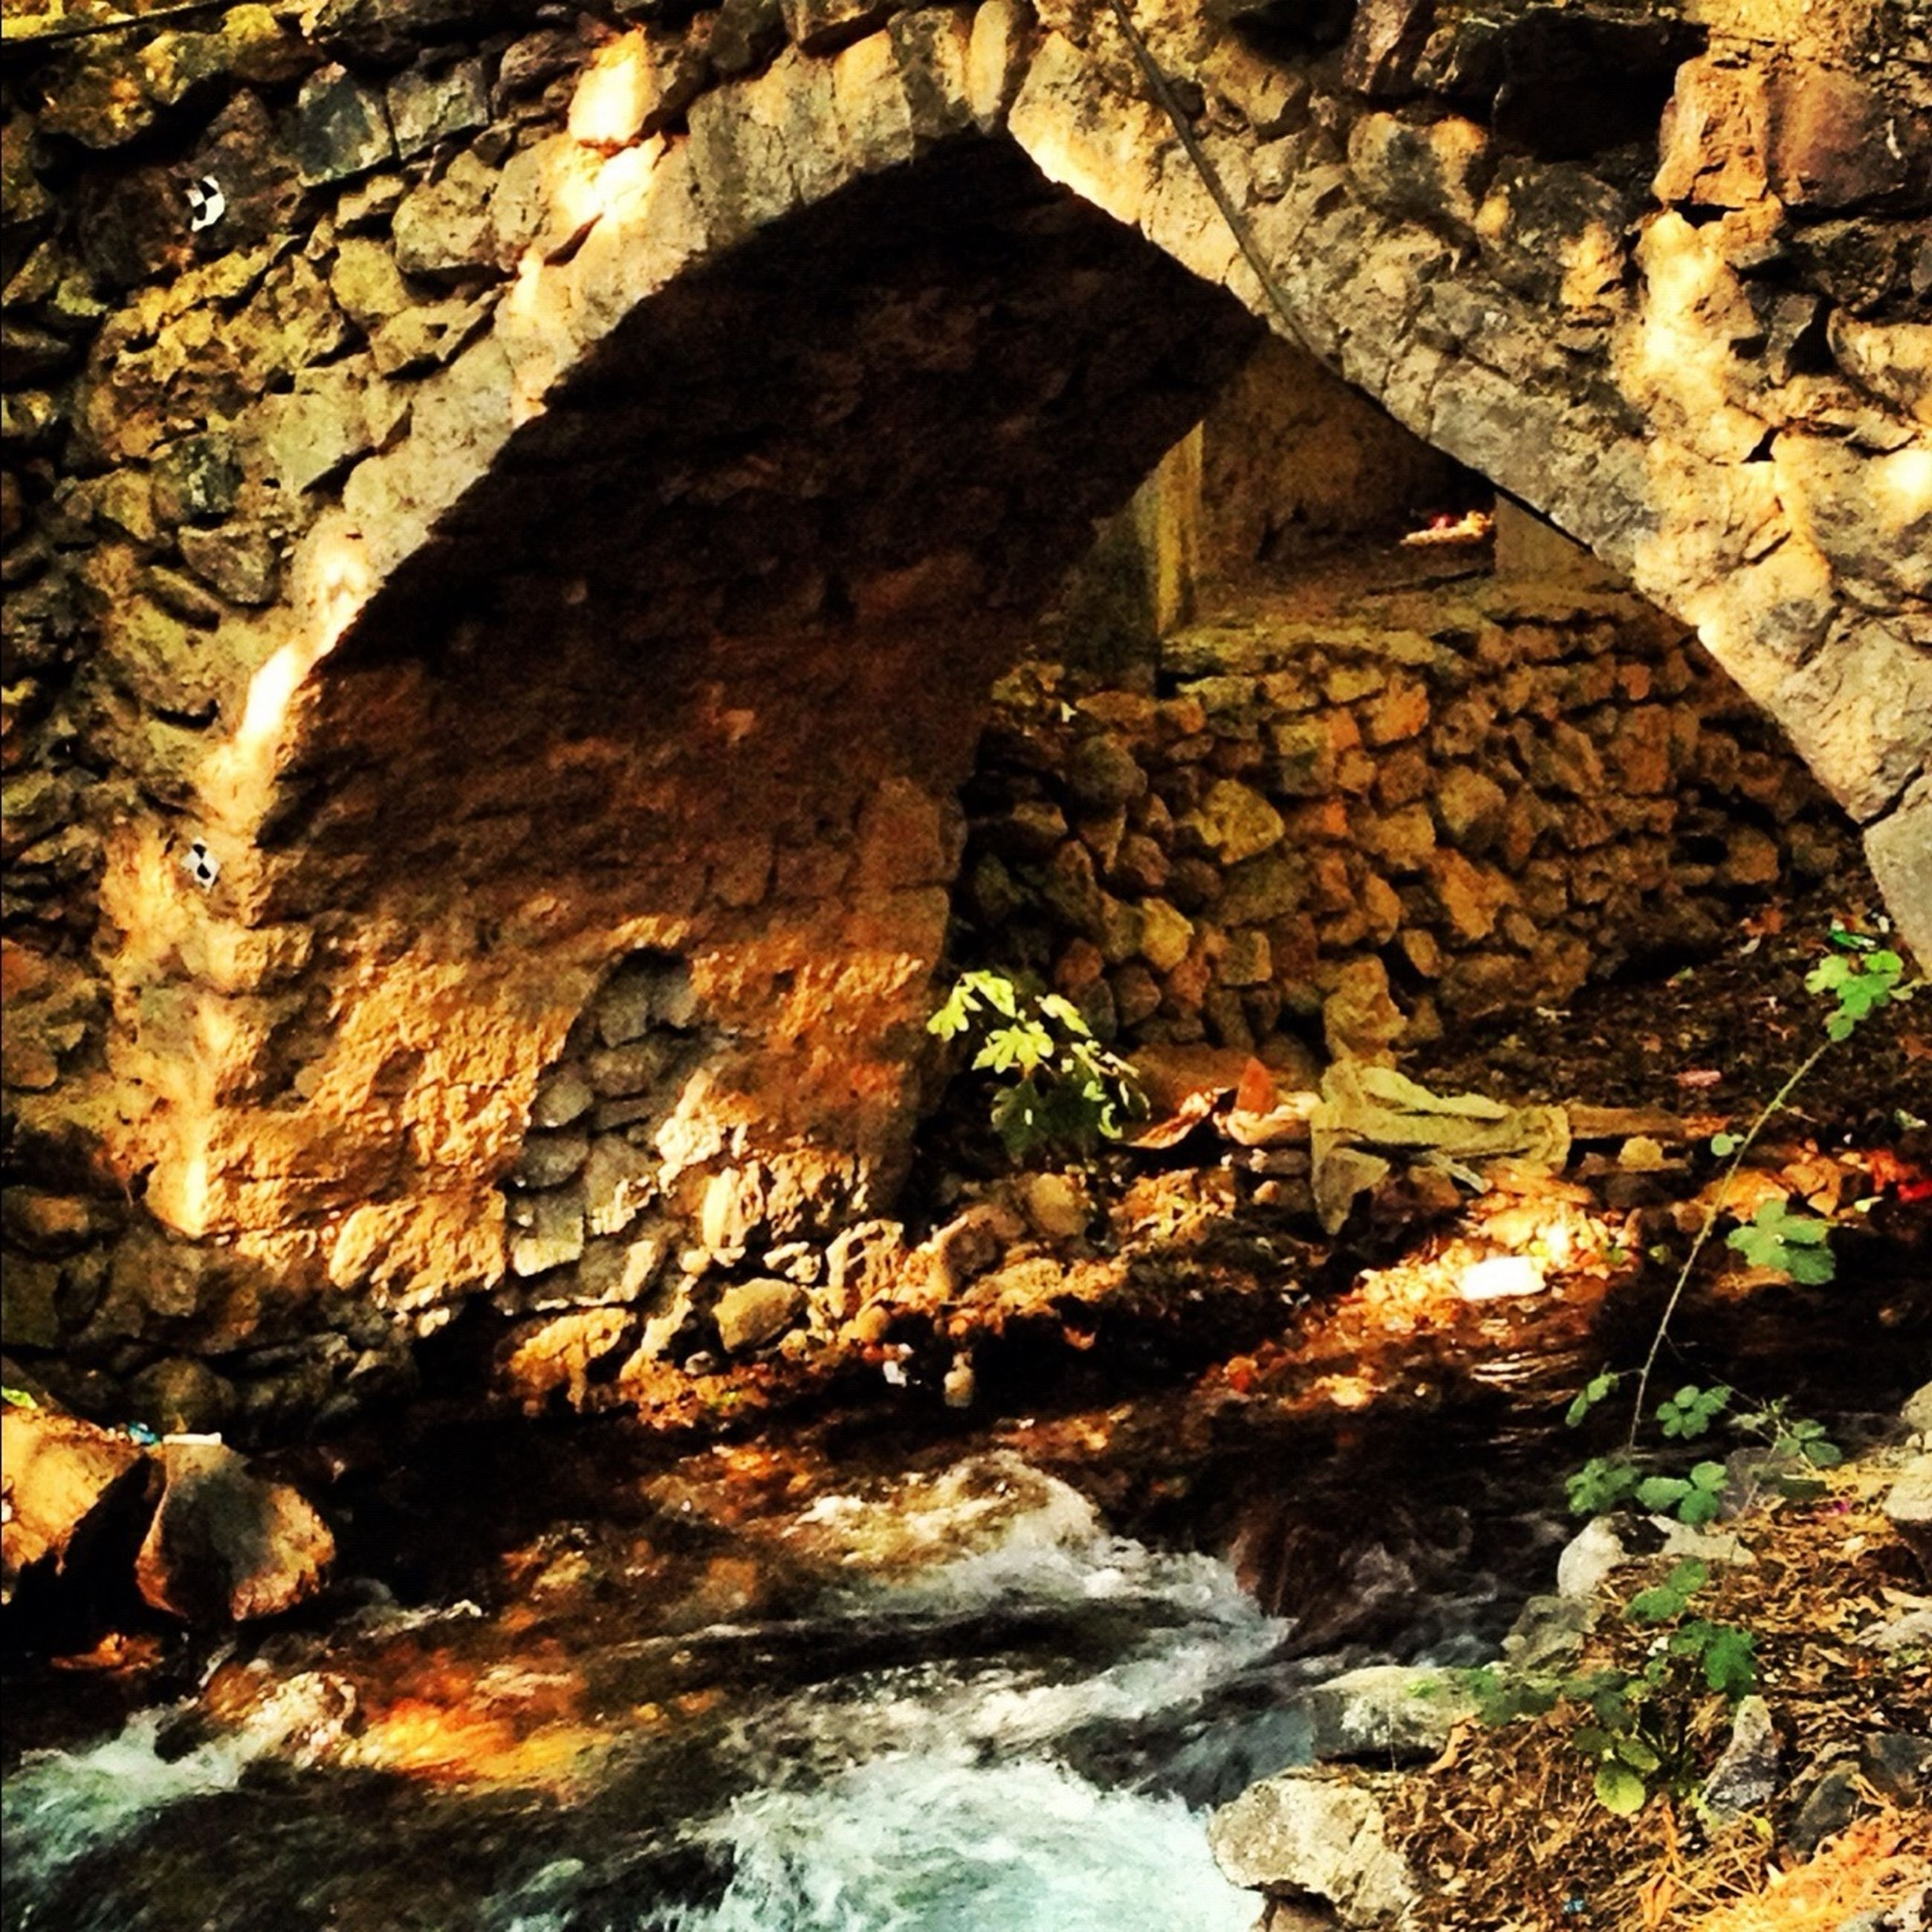 rock - object, water, built structure, stone wall, architecture, rock formation, stone - object, stone, stream, nature, sunlight, rock, river, day, arch, outdoors, flowing, tree, no people, reflection